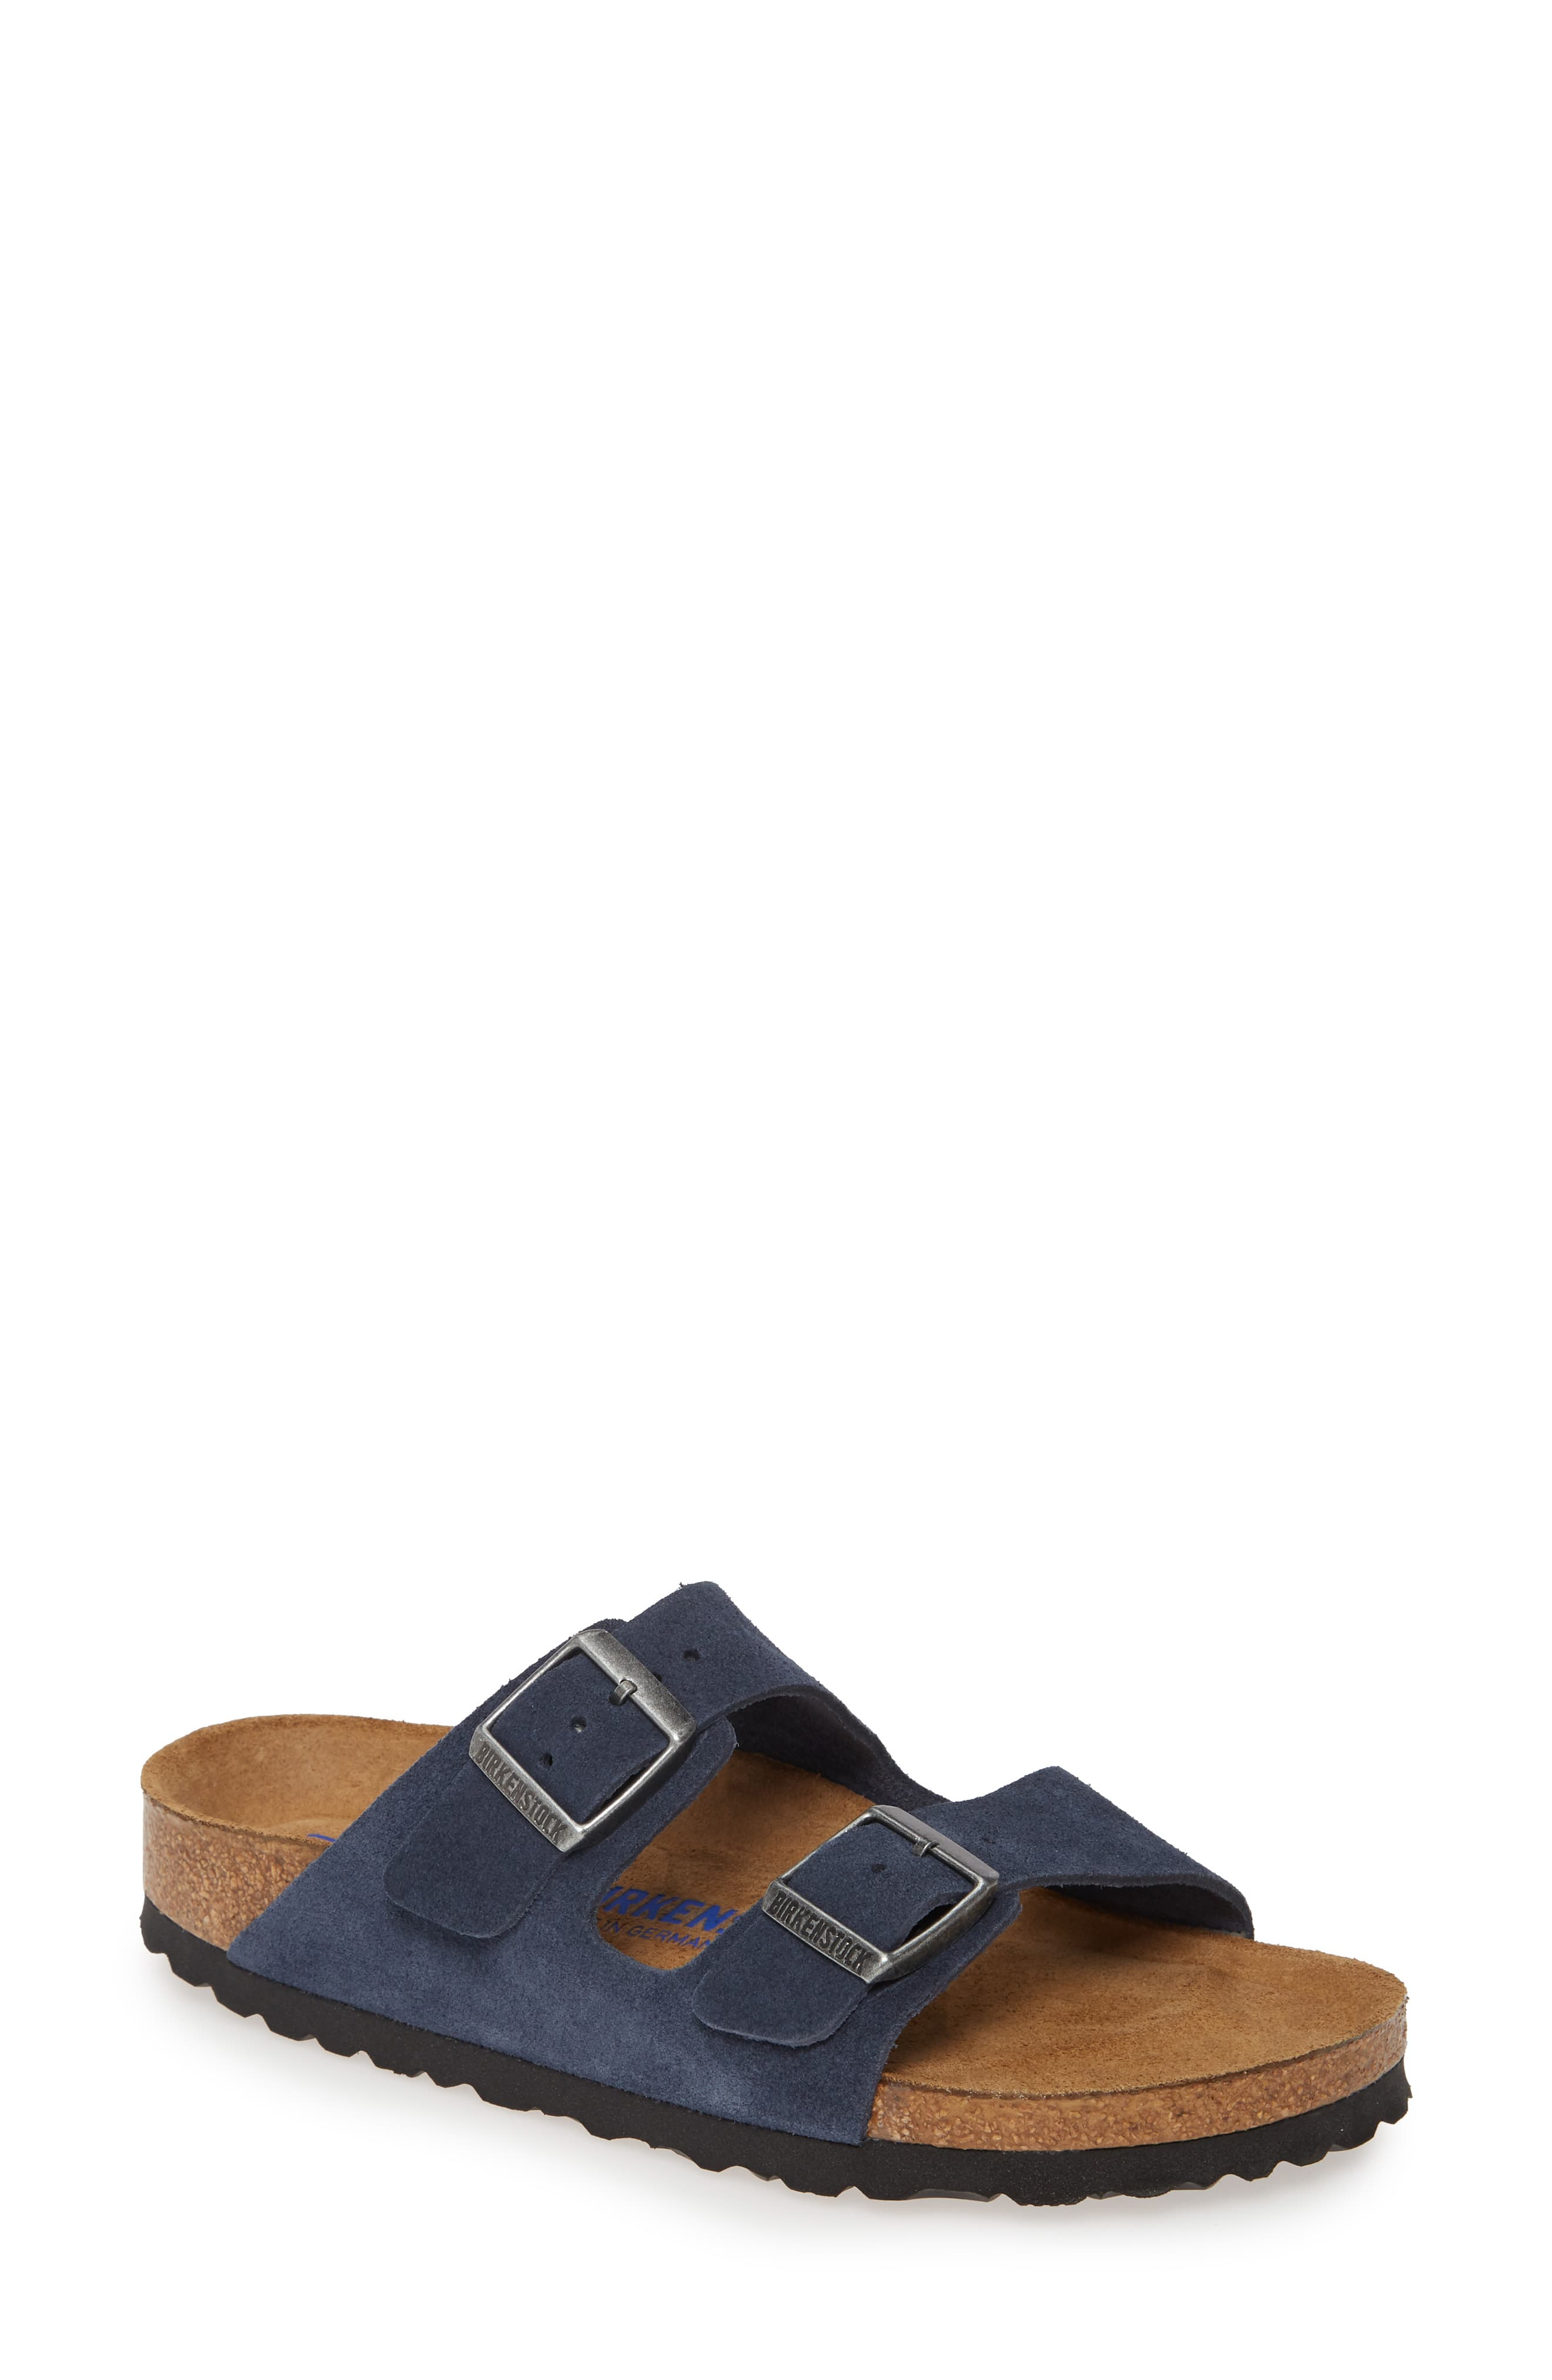 'Arizona' Soft Footbed Suede Sandal by Birkenstock, available on nordstrom.com for $134.95 Kendall Jenner Shoes Exact Product